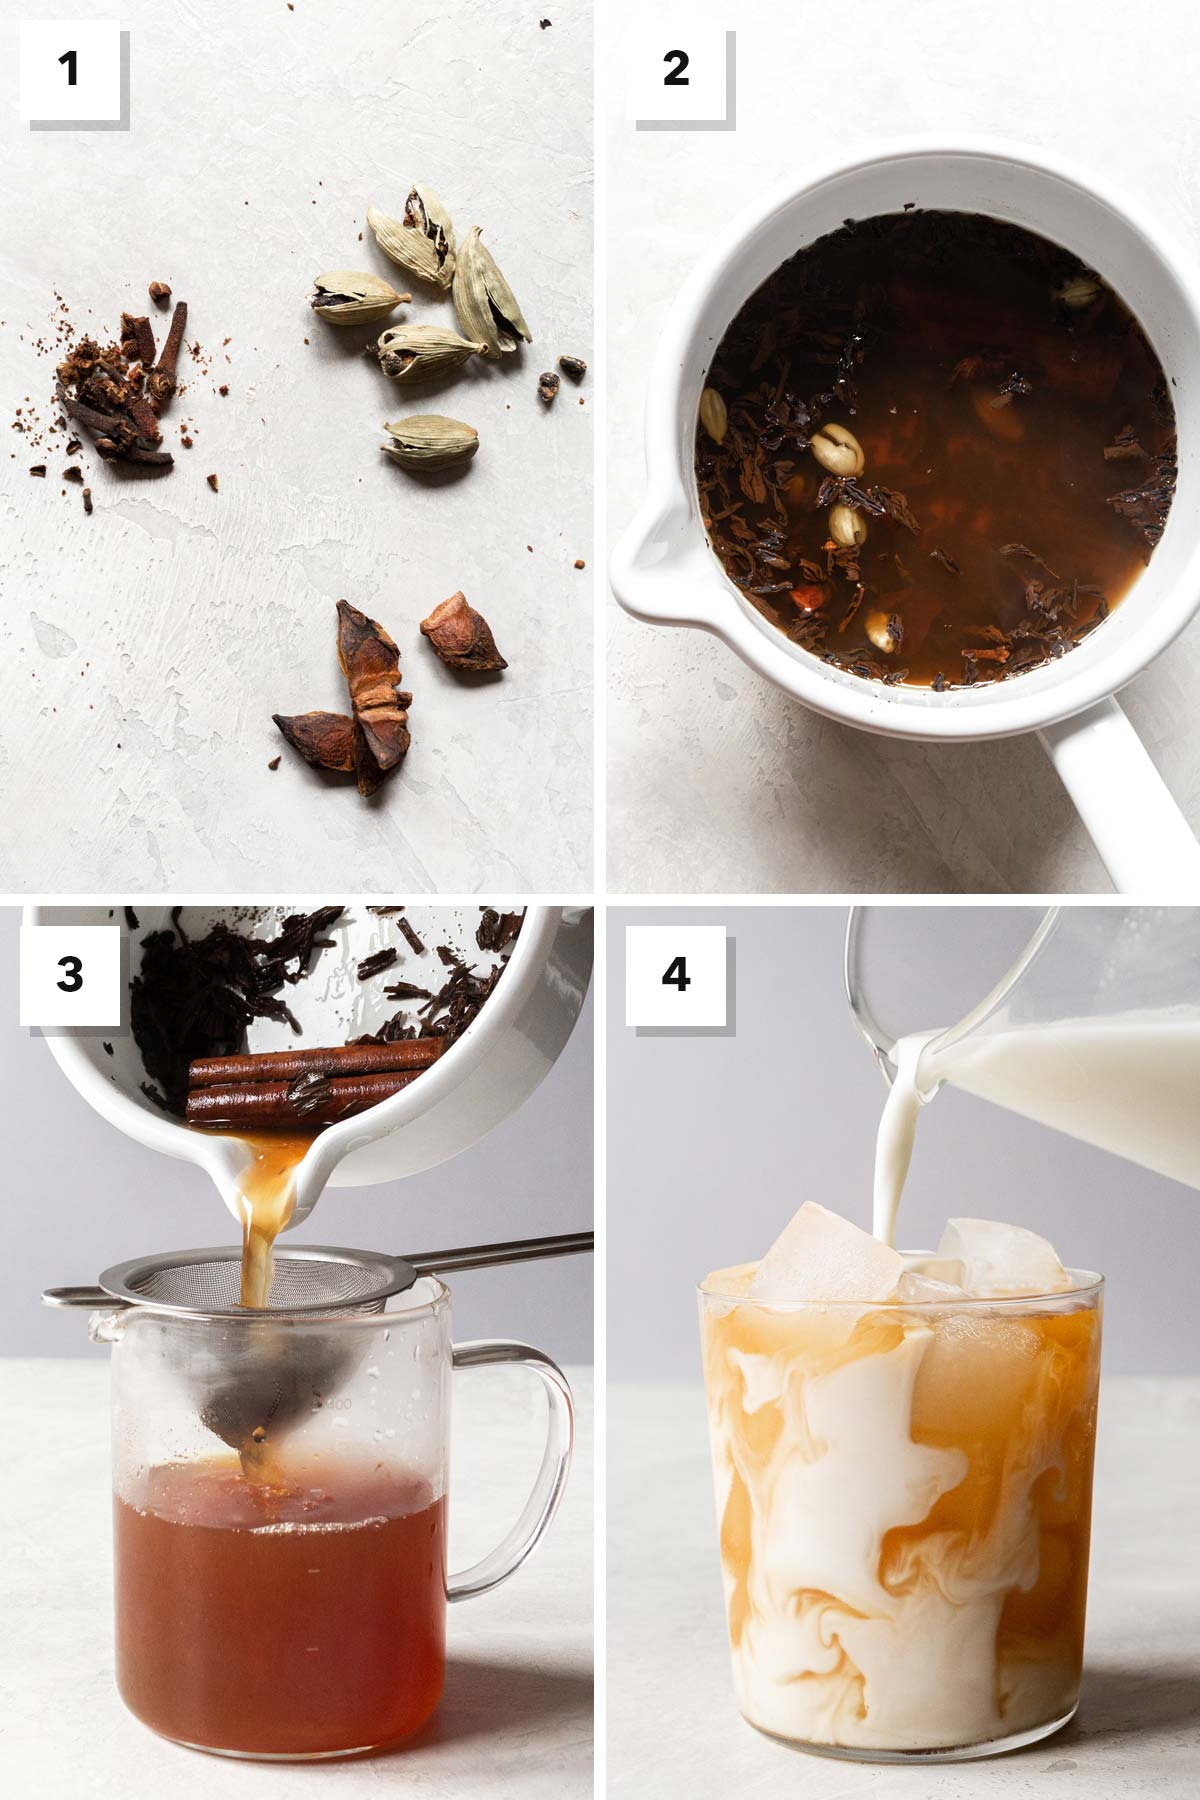 Four photo collage showing steps to make an iced chai latte.